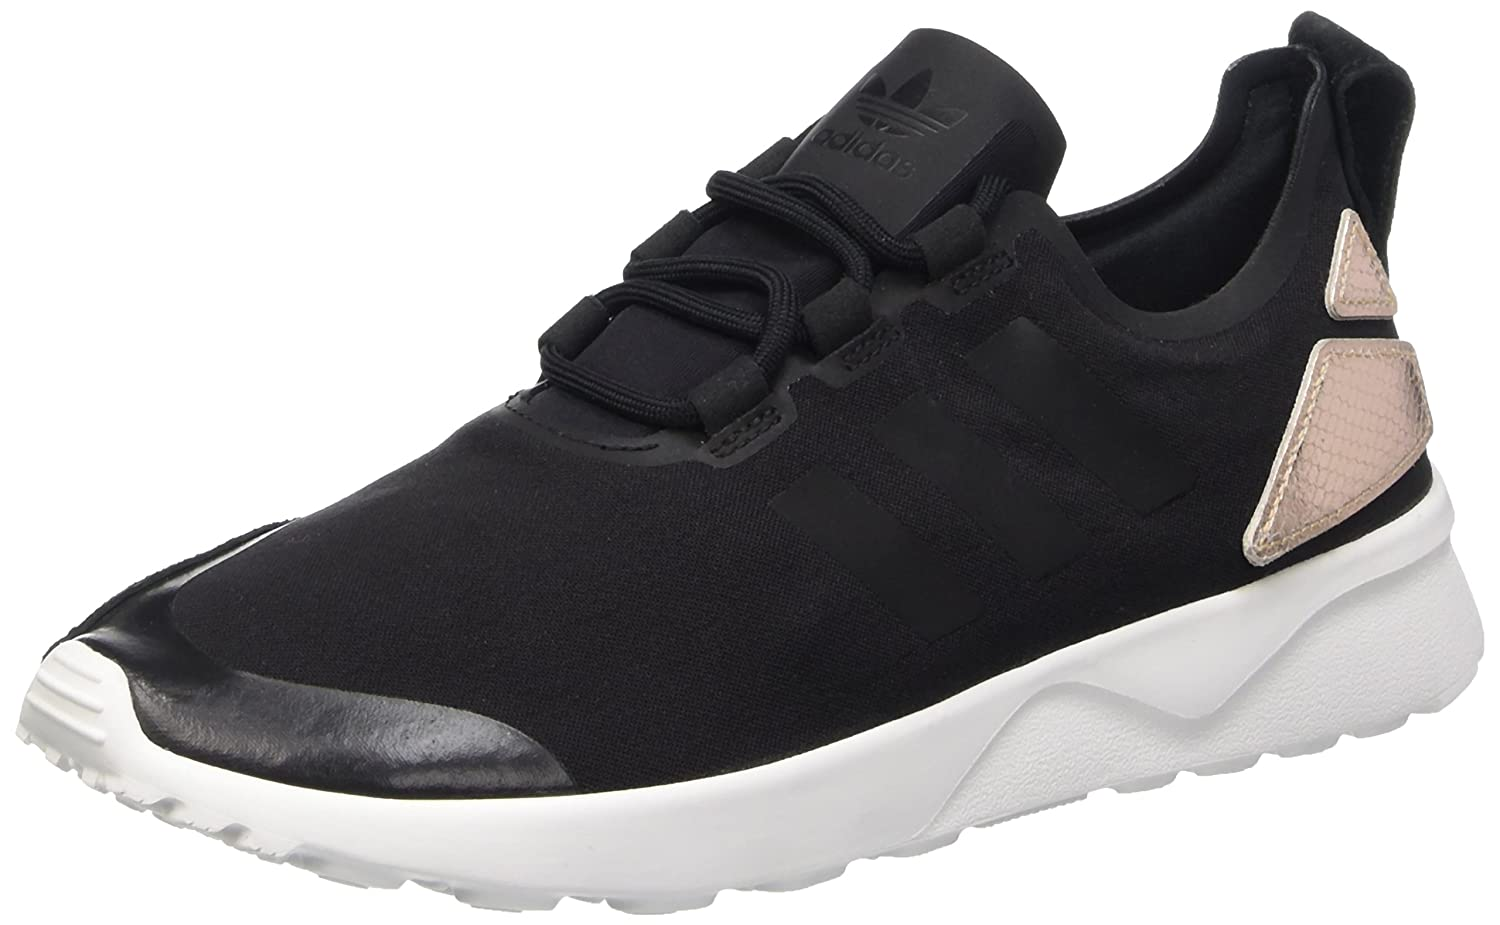 25f83425537 adidas Women s Zx Flux Adv Verve W Running Shoes  Amazon.co.uk  Shoes   Bags